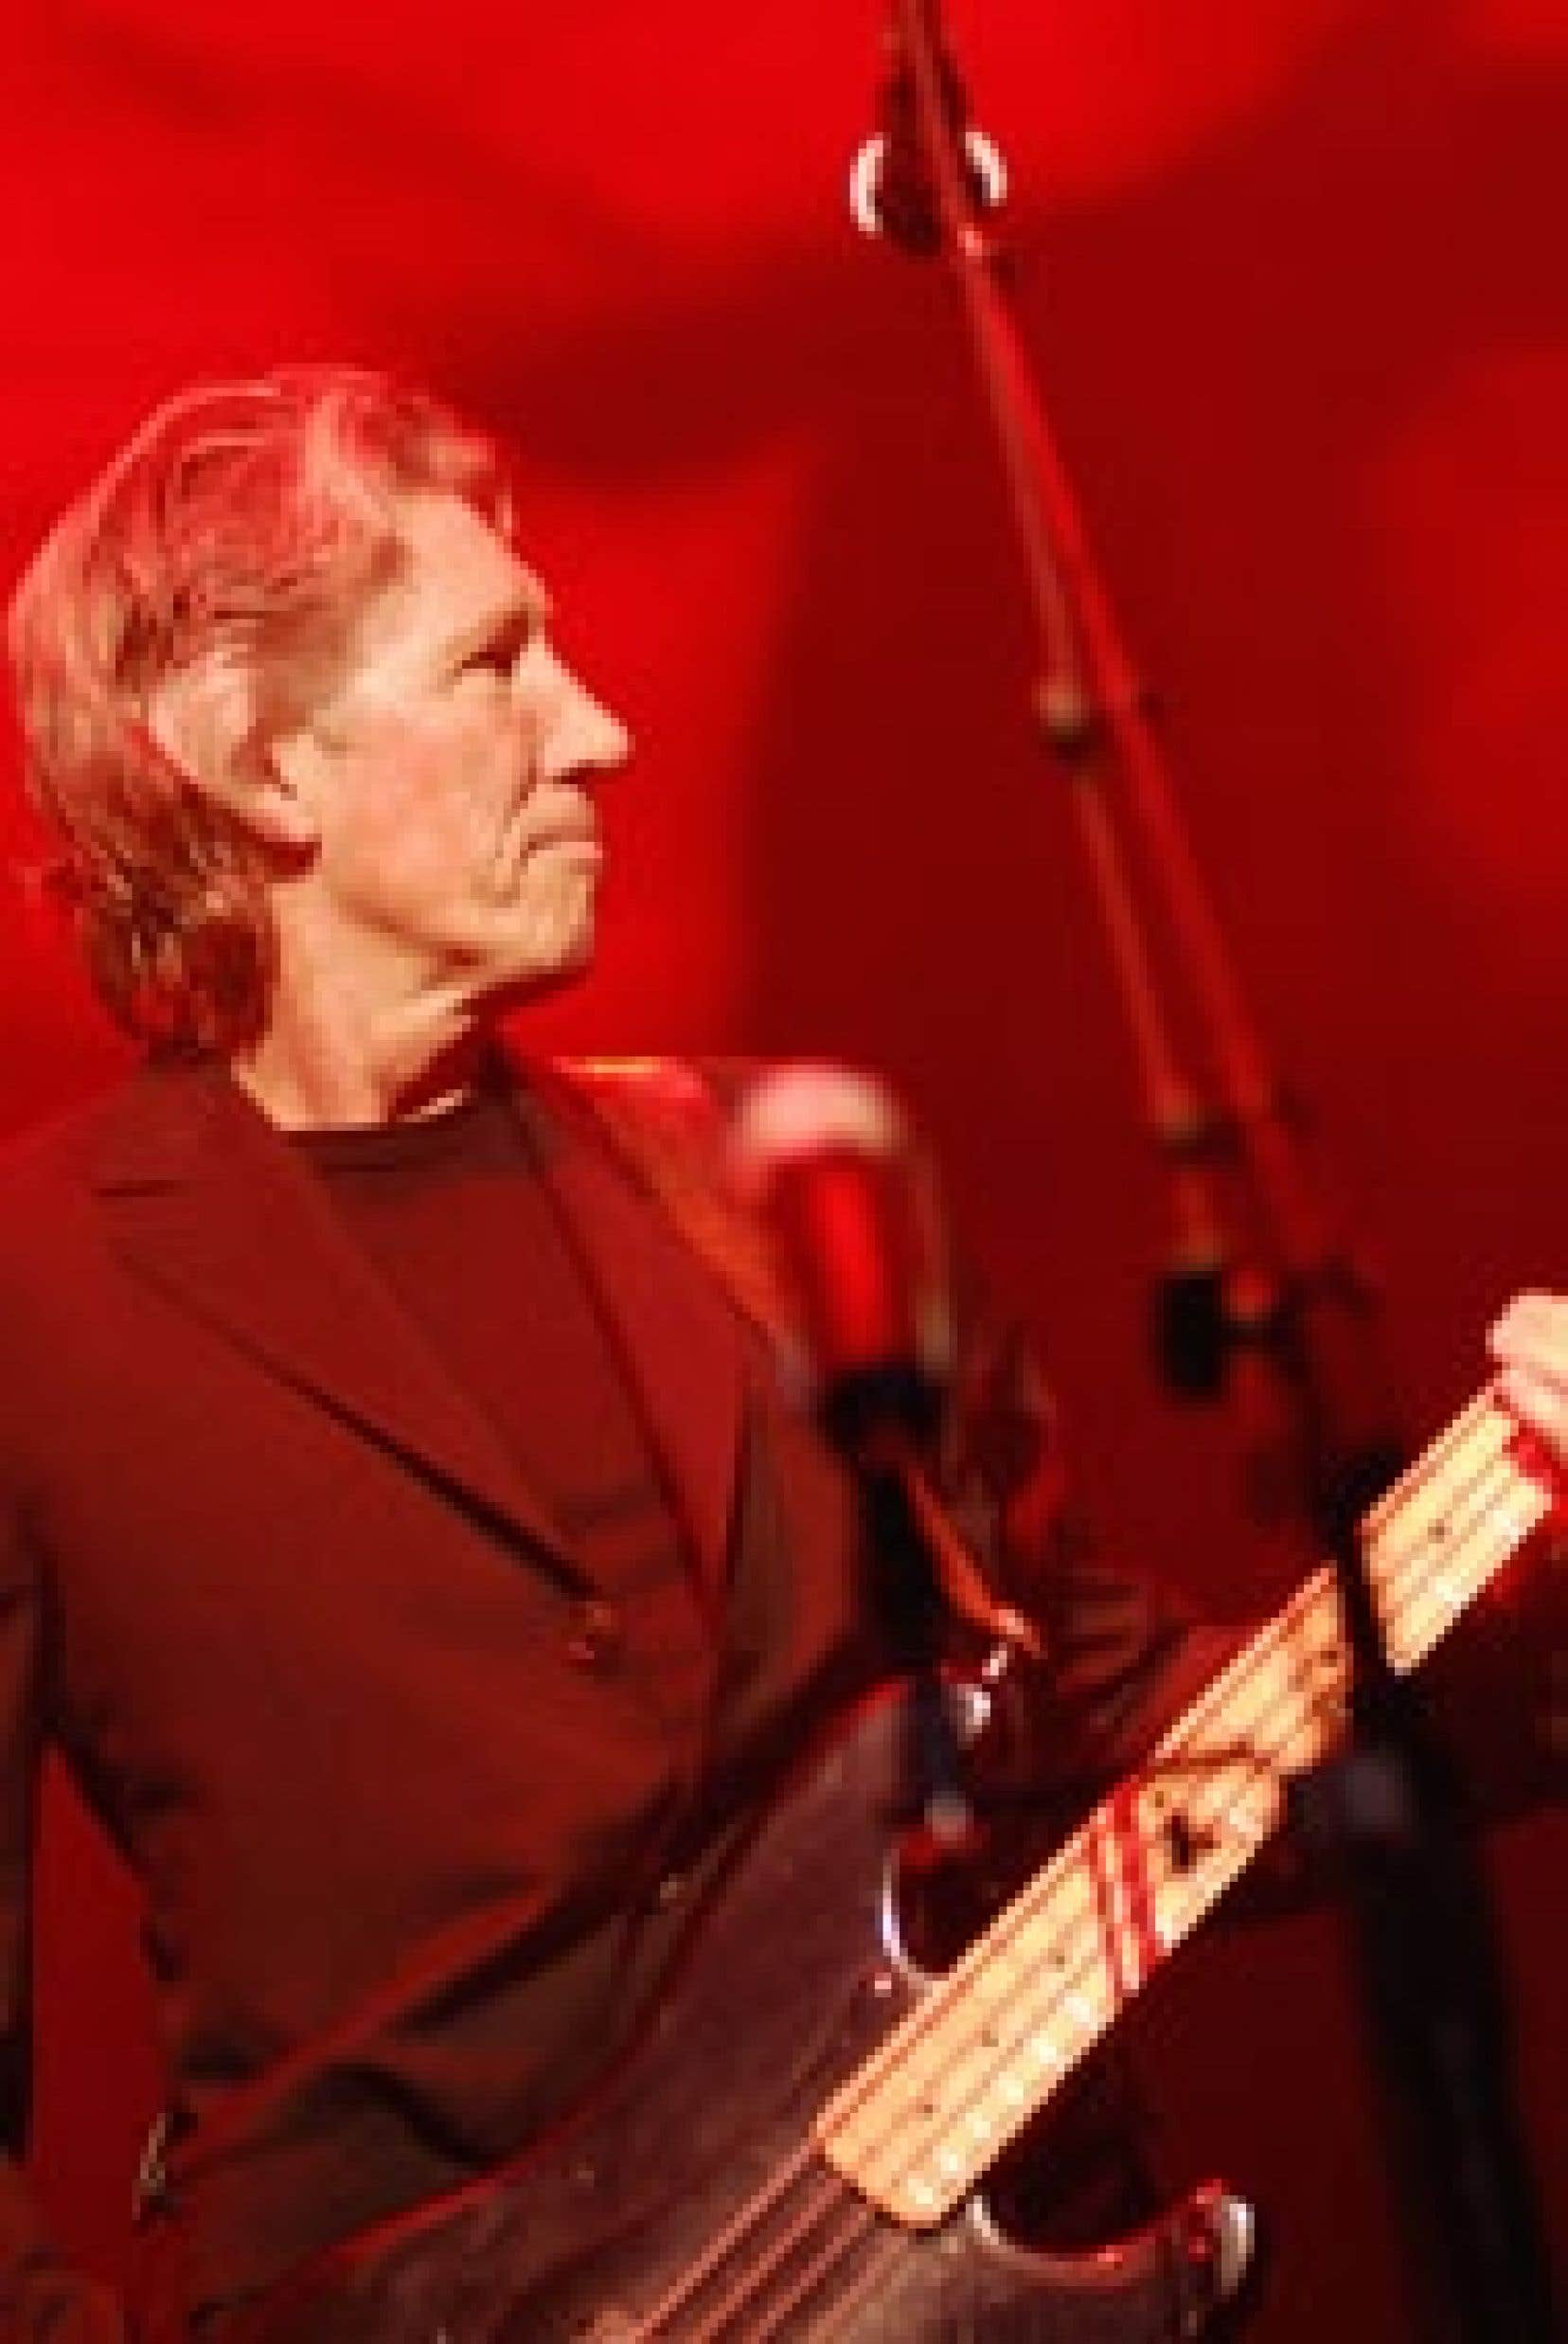 Roger Waters a eu beau ramener le dirigeable en forme de cochon rose dans Sheep comme au temps de la tournée Animals, s'entourer de sbires capables de jouer note pour note les Shine On You Crazy Diamond, Wish You Were Here et la totale de l'album The Da